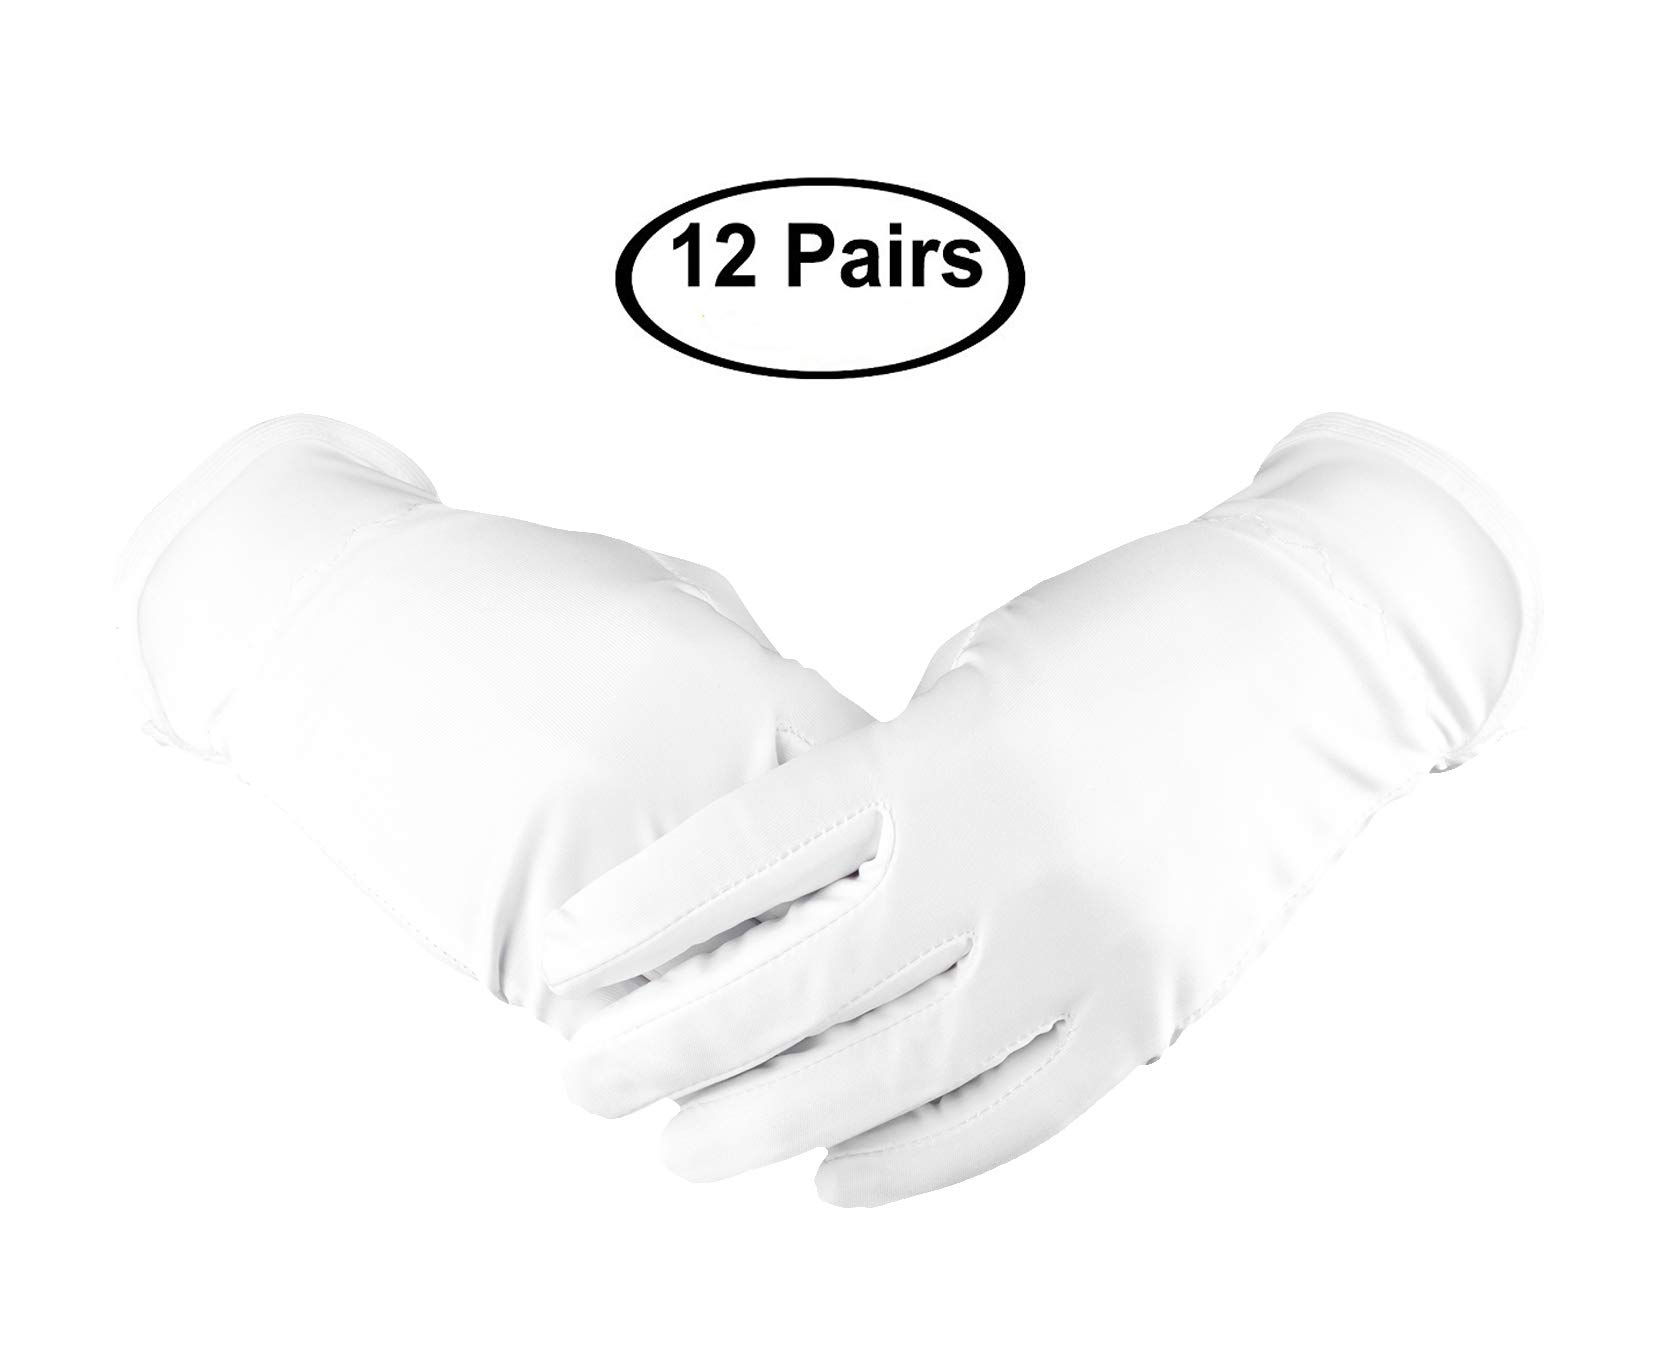 White Cotton Gloves,Fashionclubs Hand Spa Glove for Cosmetic Moisturizing,8.6'' Stretchy Wrist Thicker Work Gloves for Coin Jewelry Silver Inspection,Uniform Formal Guard Parade Gloves,12 Pairs